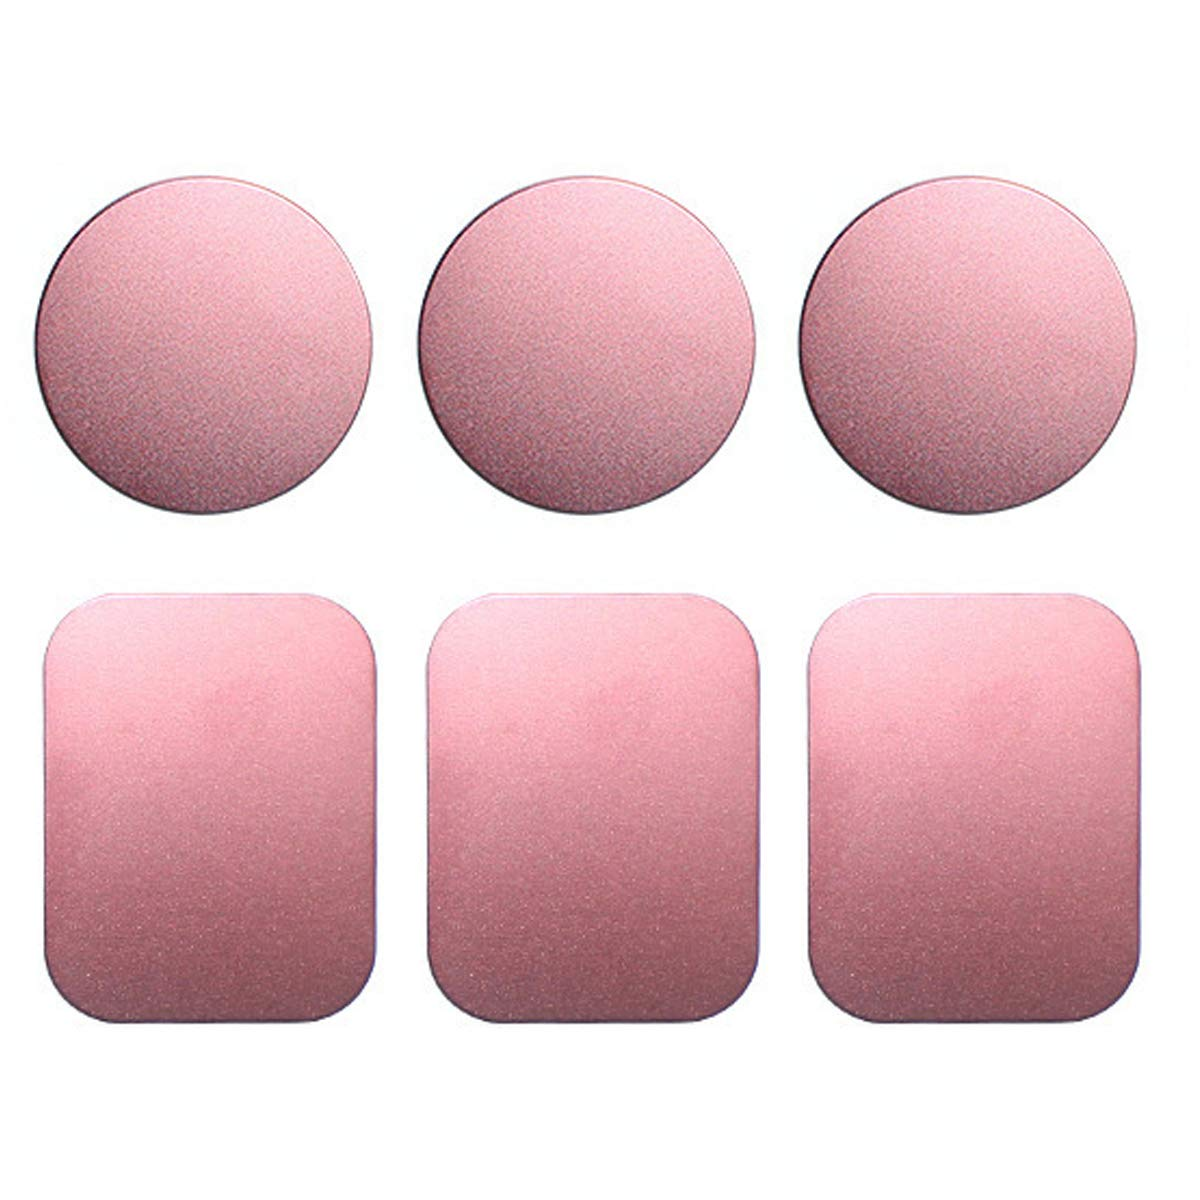 Pink Magnet Phone Holder Metal Plate 6 Pack Plates Plates for Magnetic Car Cradle Wide Compatibility Strong Stickiness